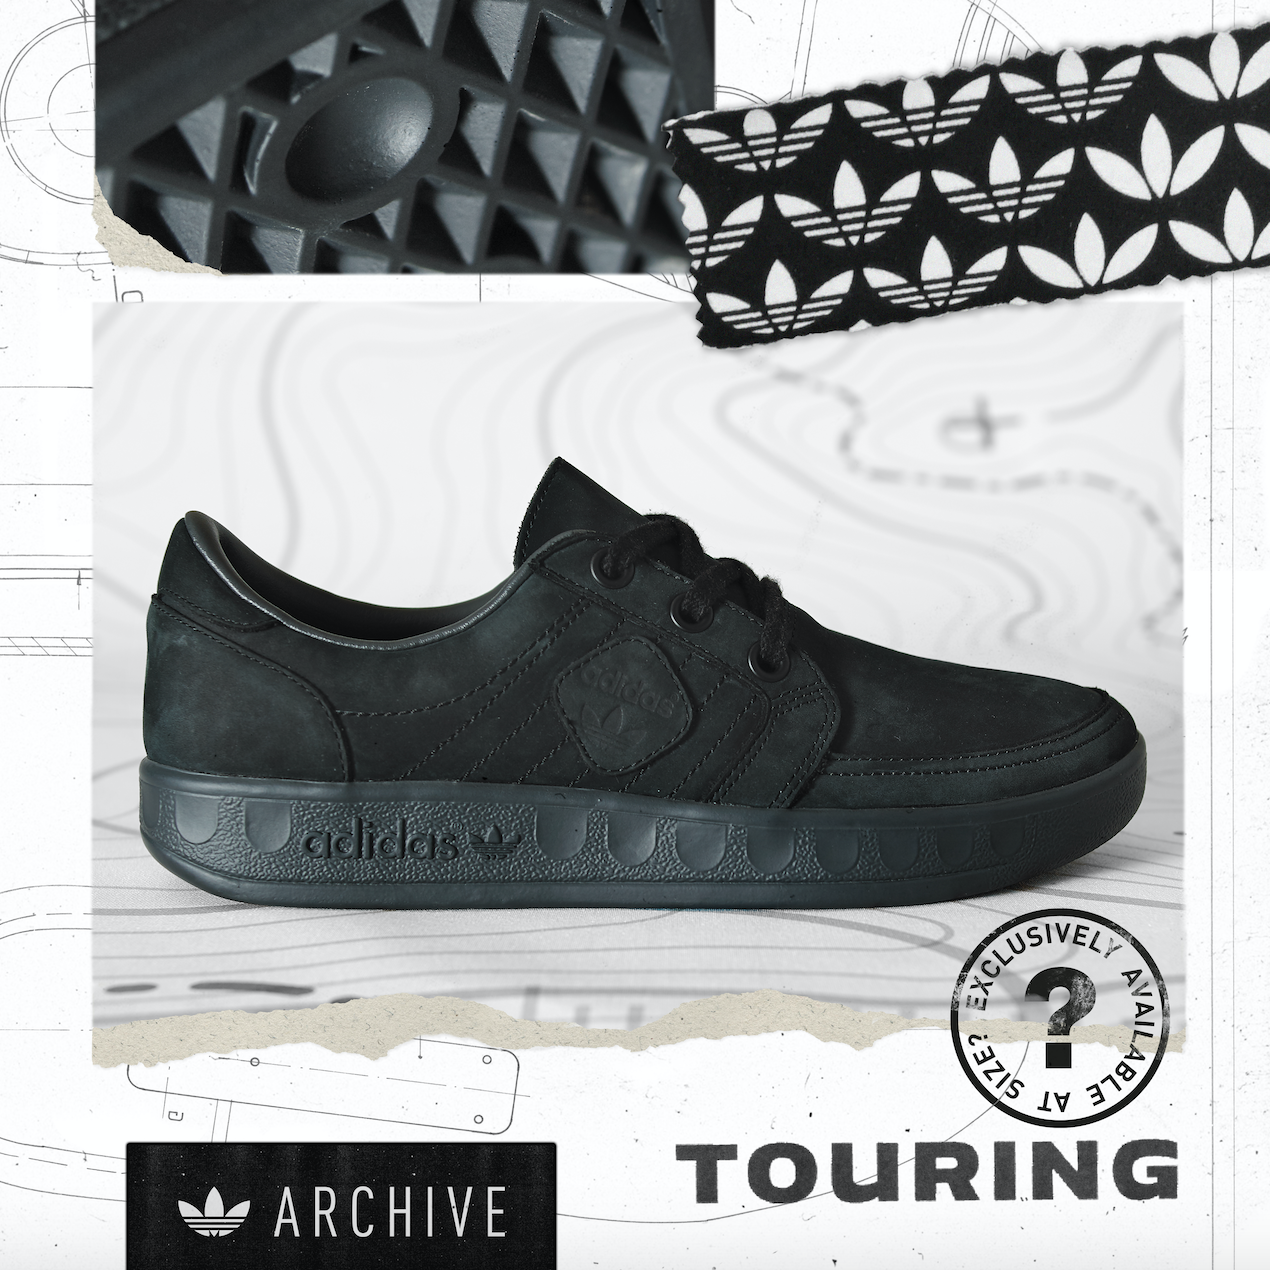 adidas Originals Archive Touring – size? Exclusive